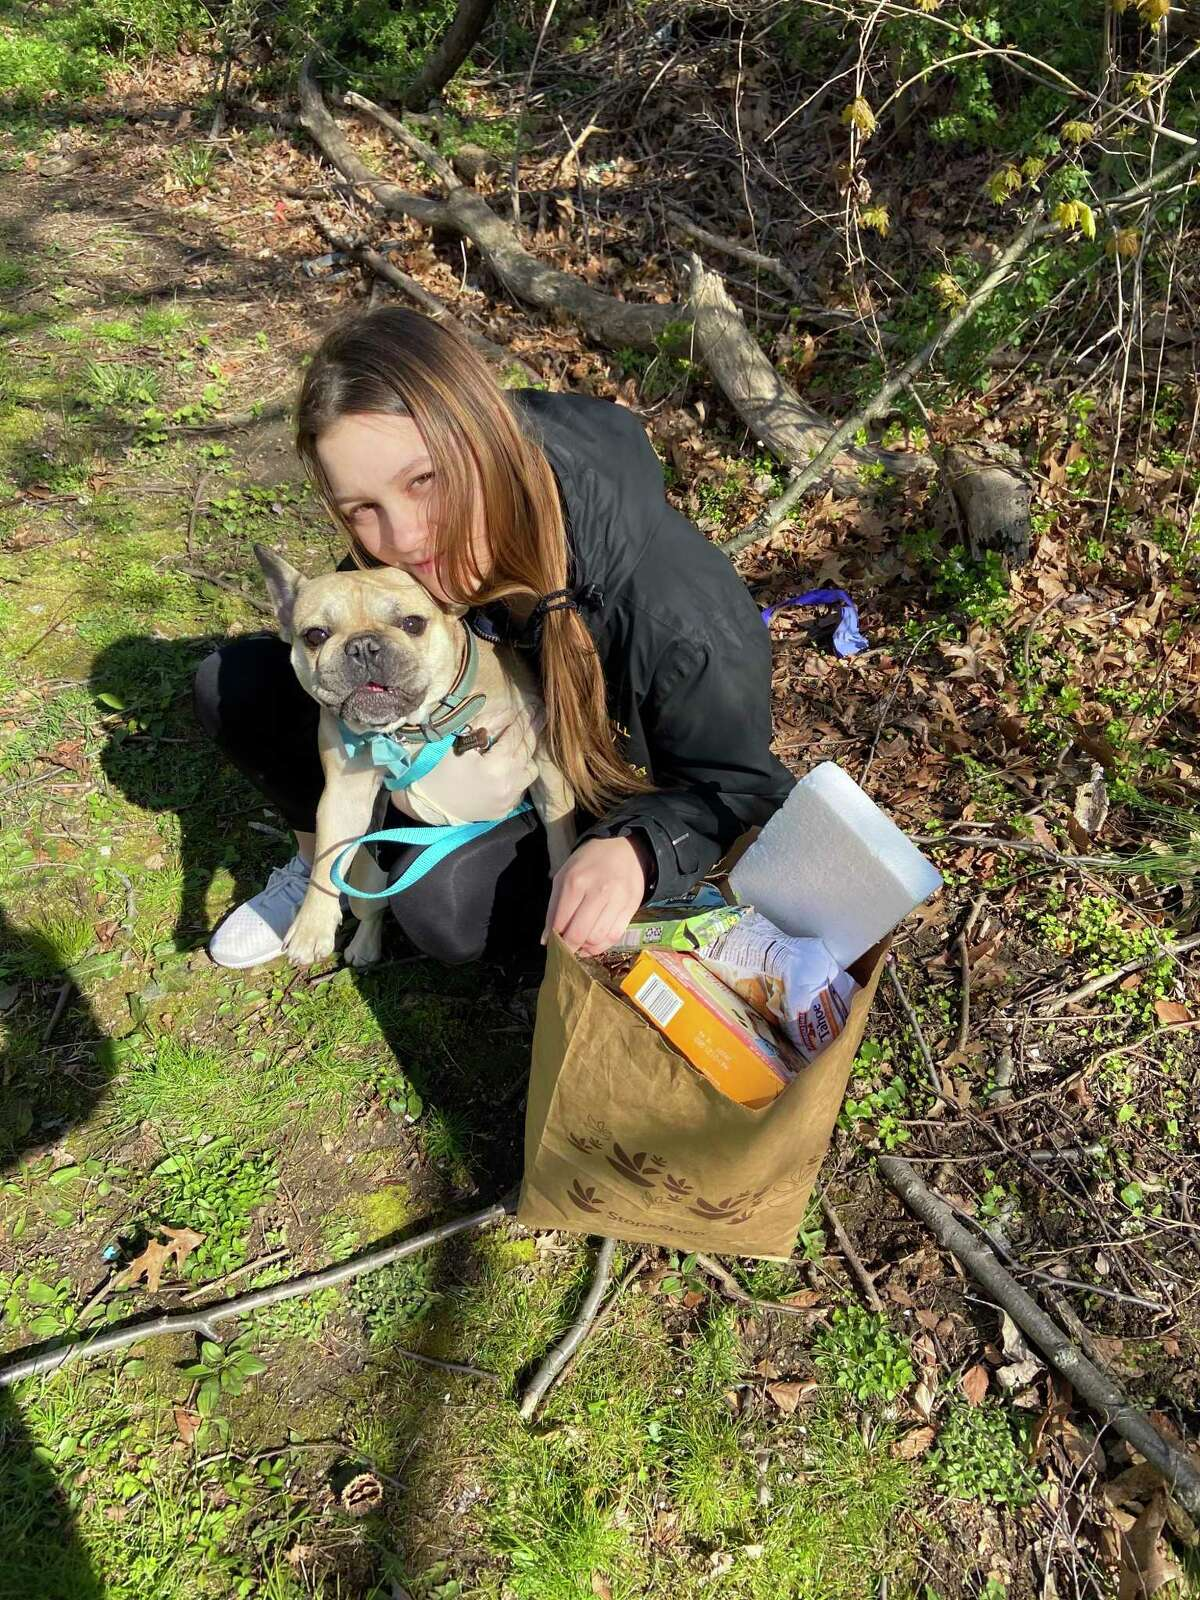 Kateryna Pekar, a Westhill High School student, picks up trash with her dog on recently, on Earth Day. Her classmate, Jack Engel, created his own climate organization, titled, Clean2BGreen. The mission of the organization is to pick up at least one piece of trash every day and inspire others to do the same.